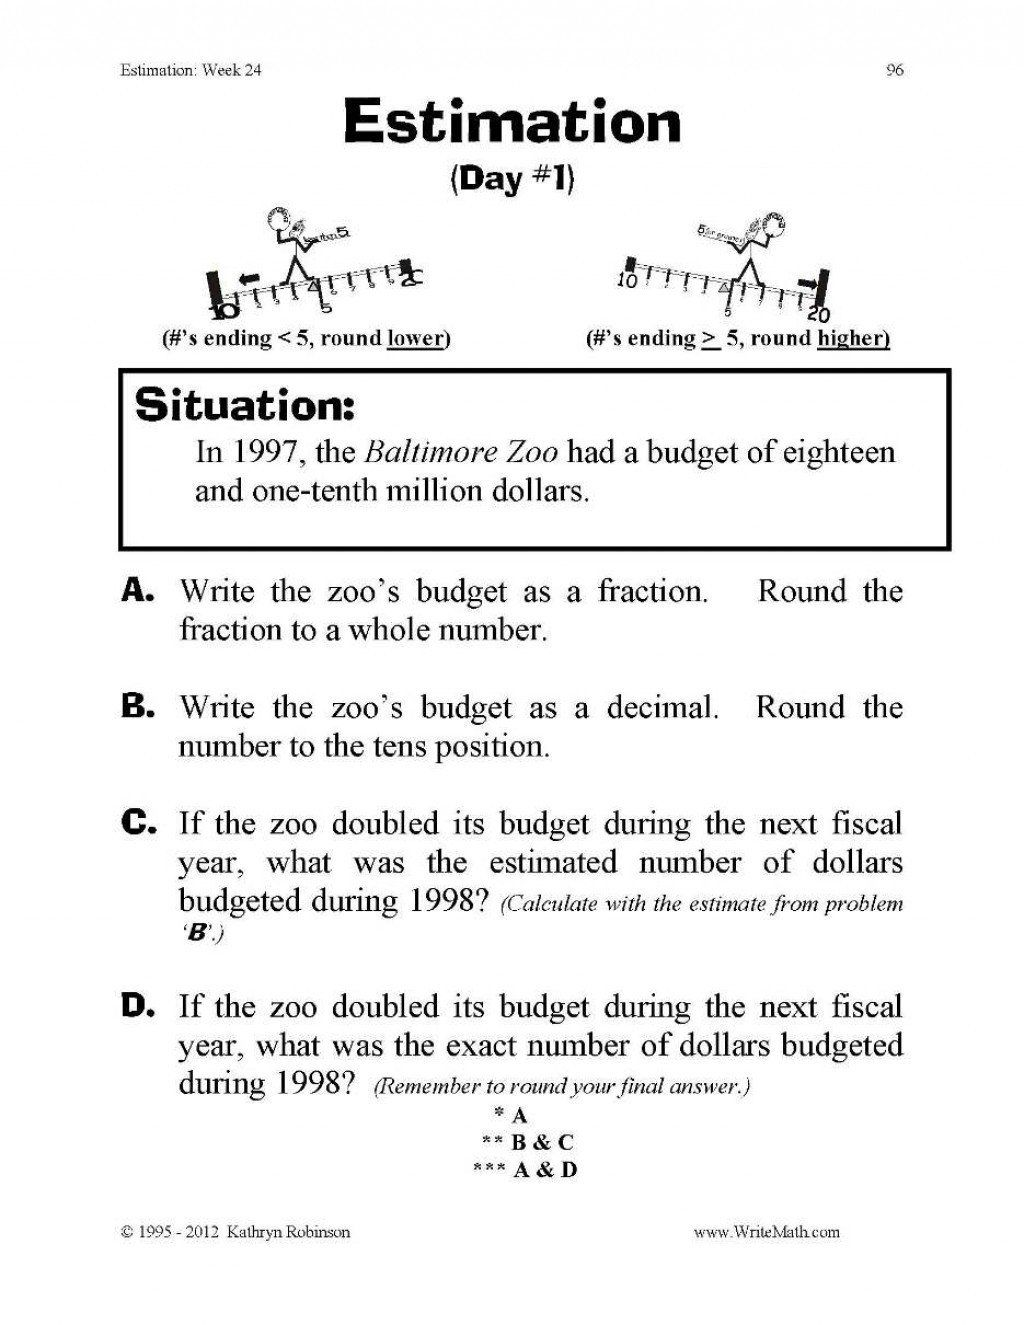 Estimation Maths Worksheets Math Estimation Worksheets In